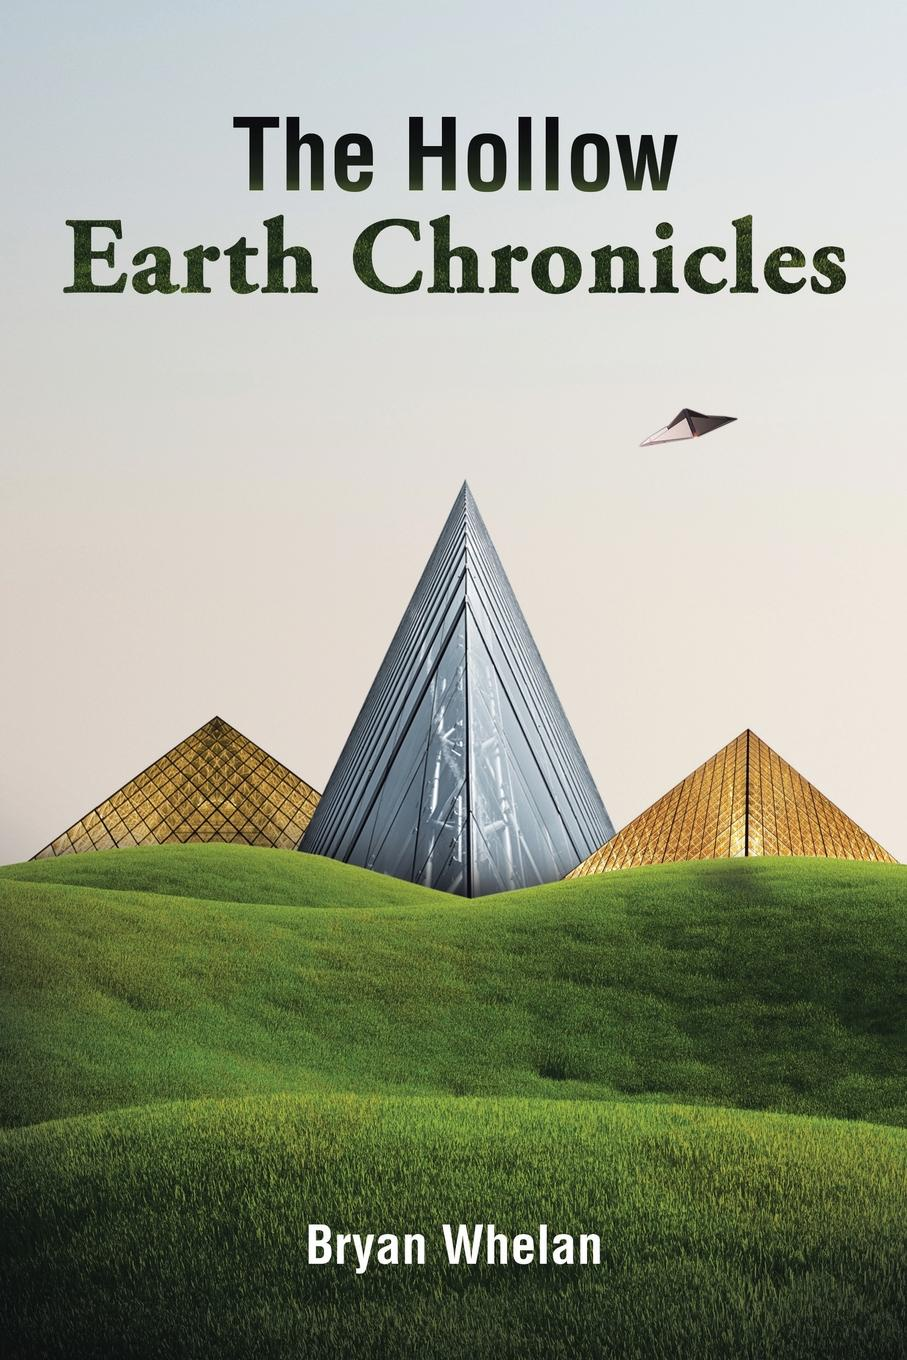 Bryan Whelan The Hollow Earth Chronicles